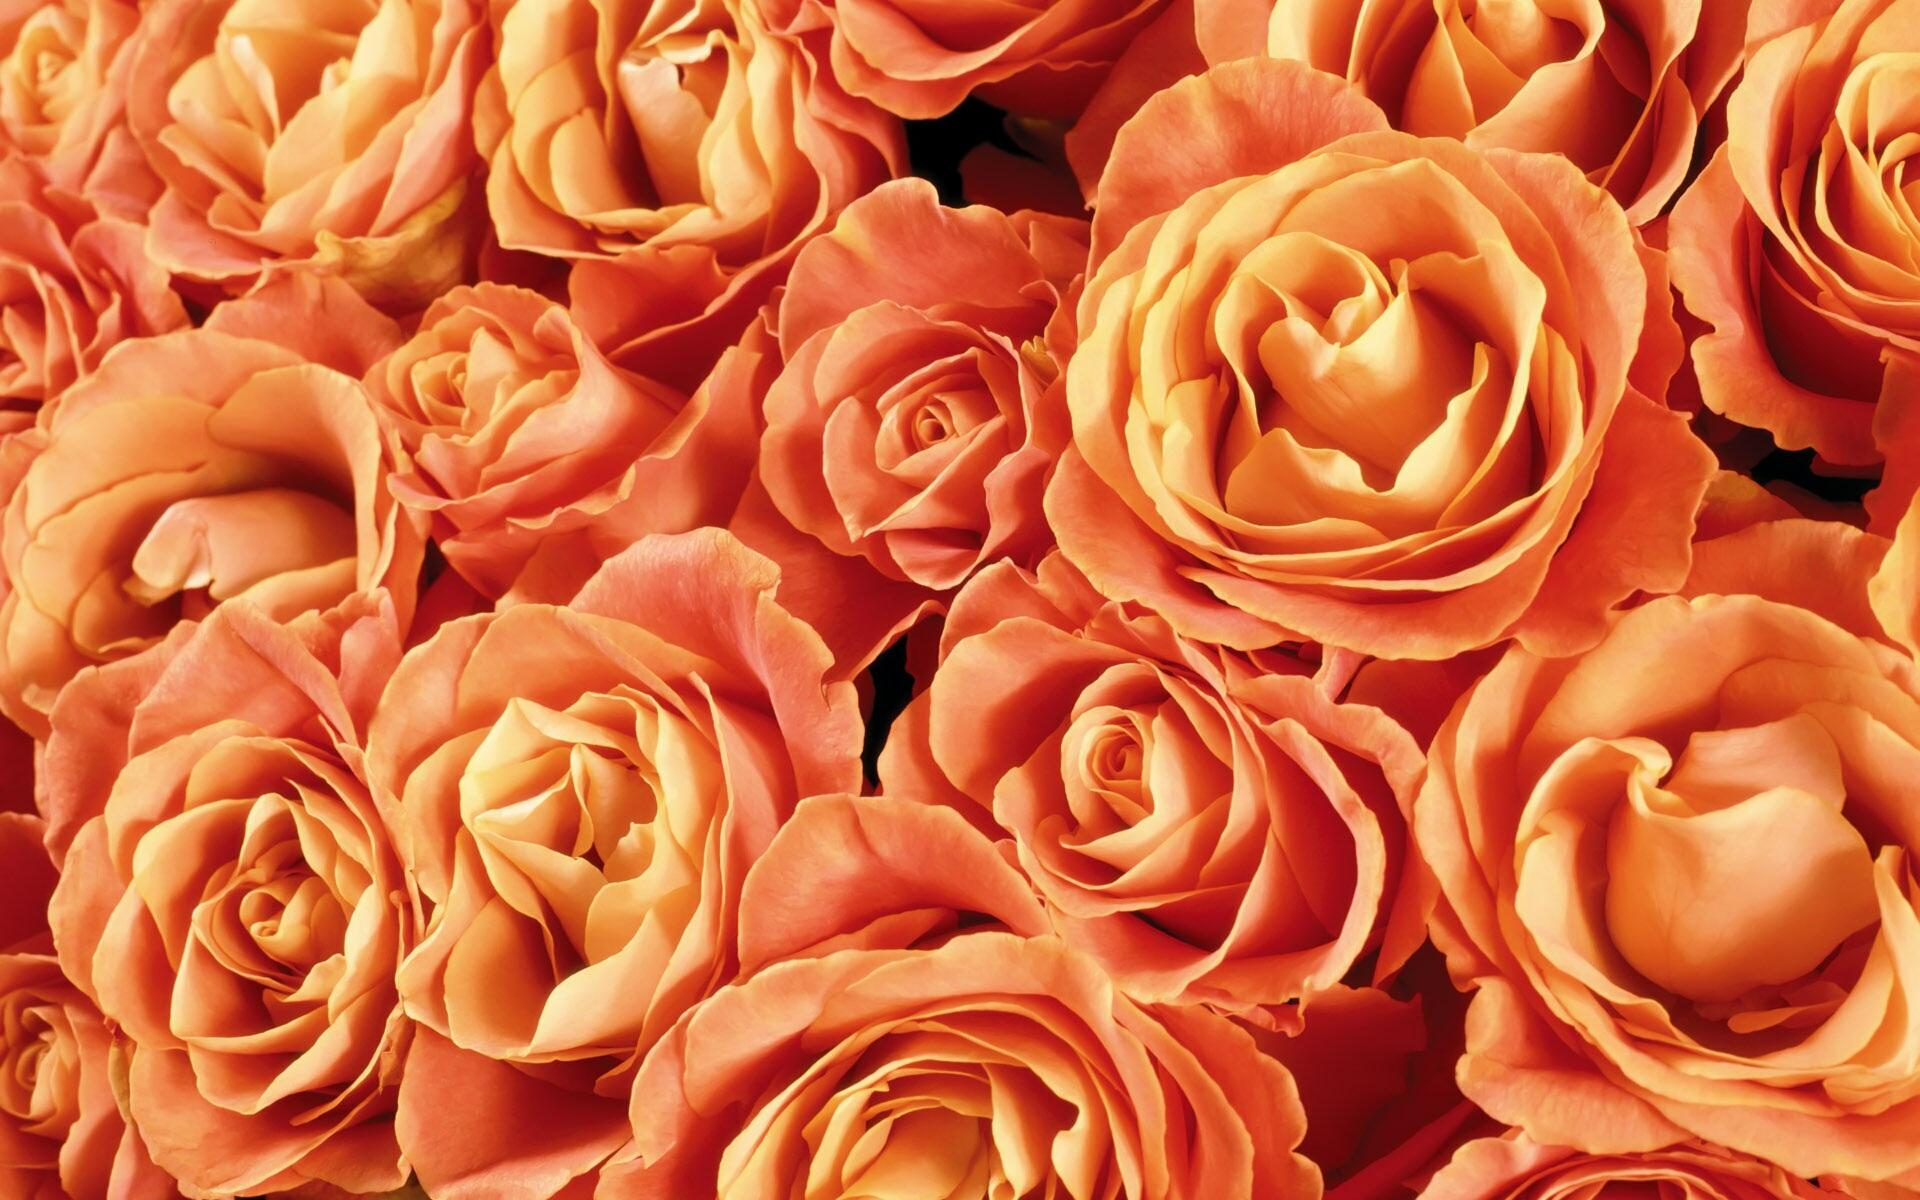 Orange Roses Backgrounds   Wallpaper High Definition High Quality 1920x1200